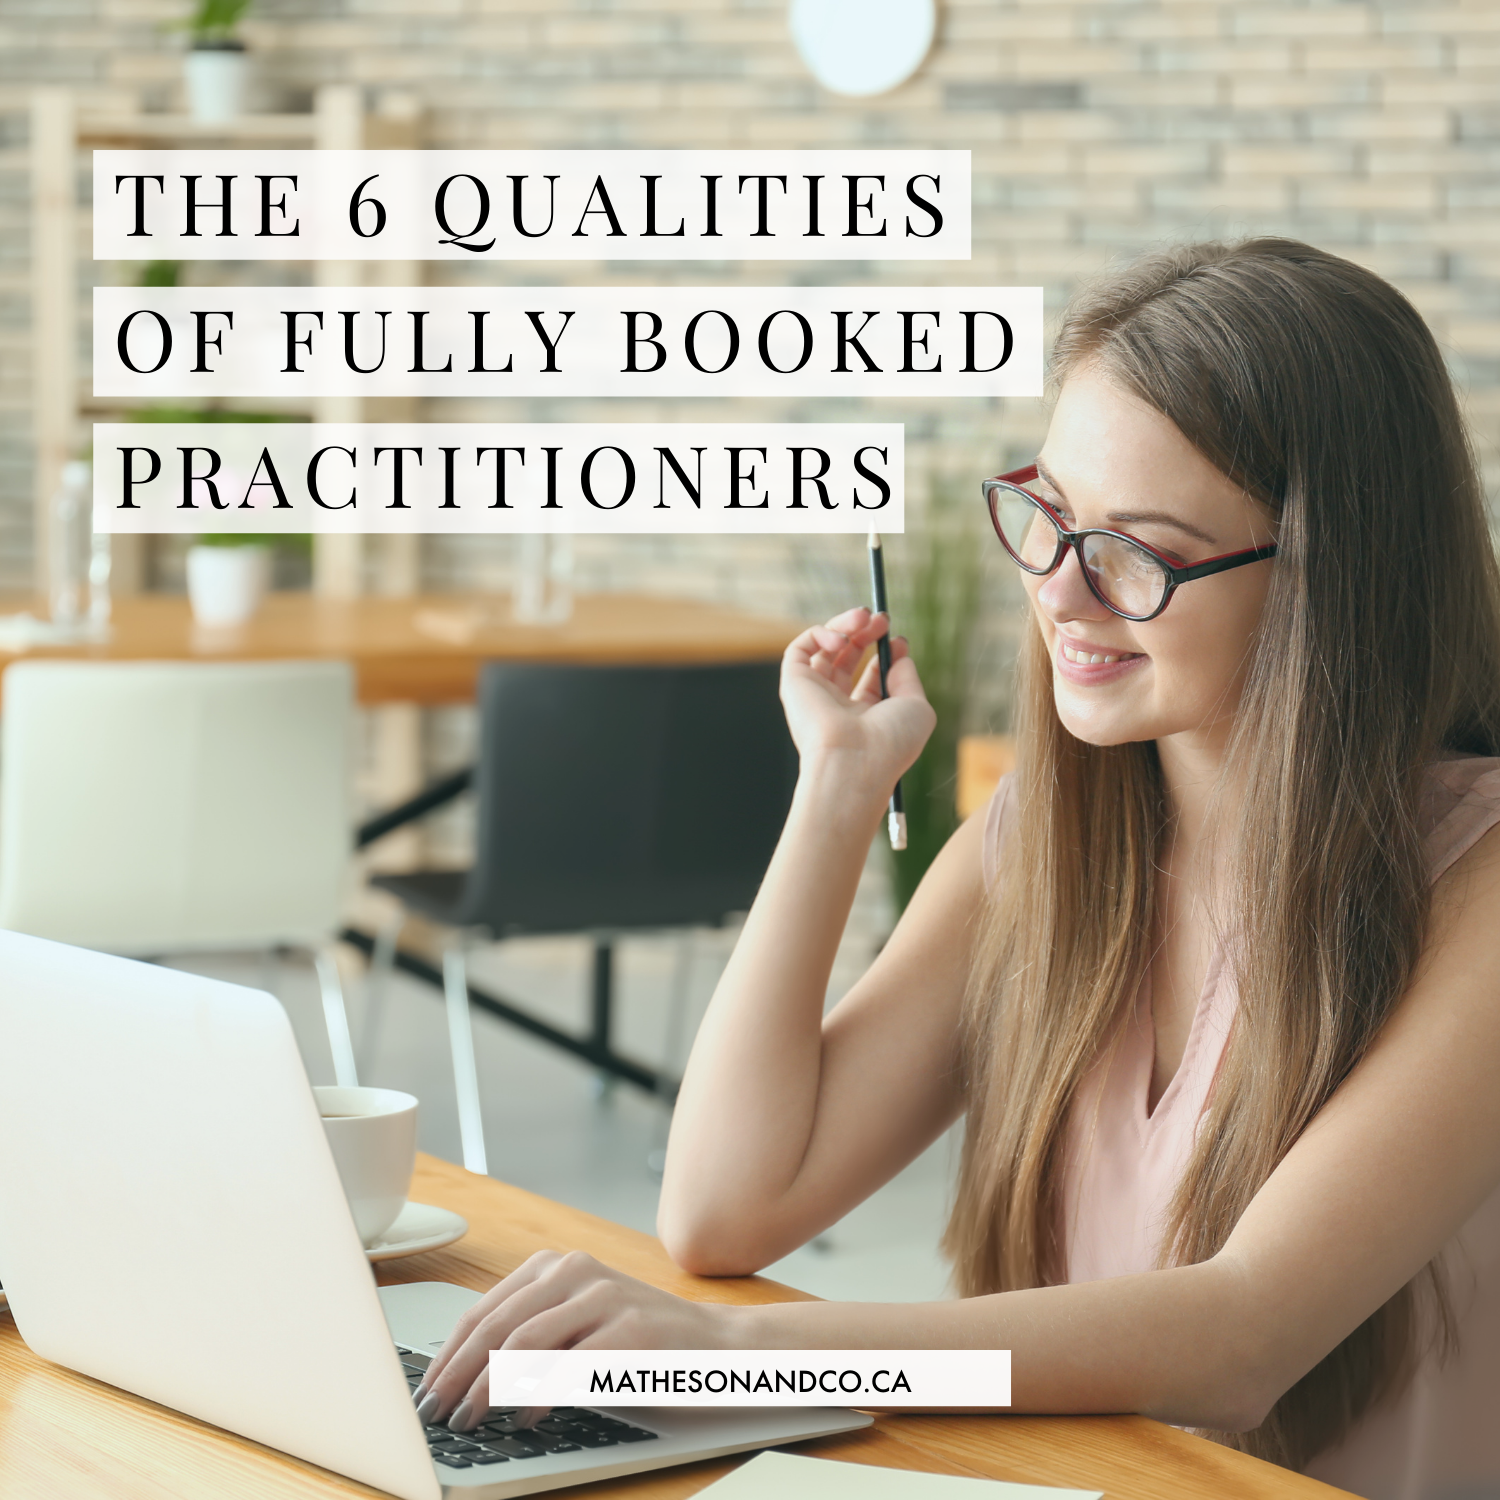 The 6 Qualities of Fully Booked Practitioners